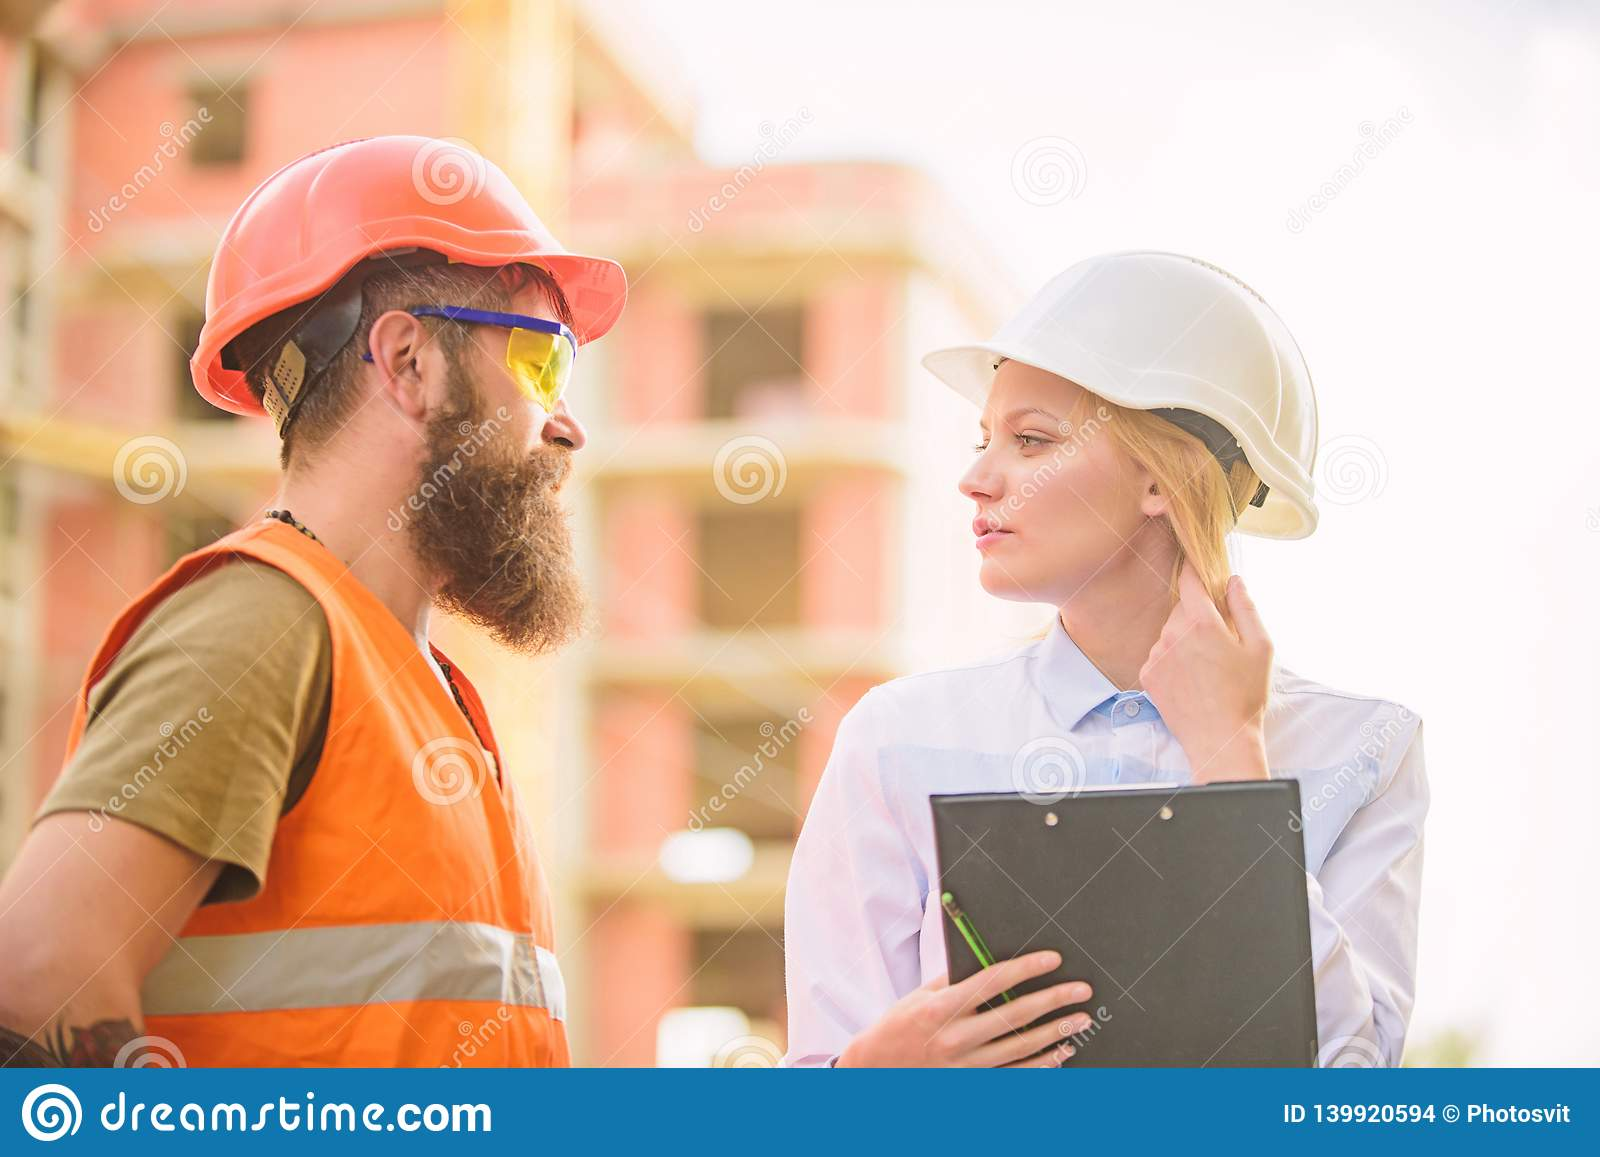 Purchase of building materials. Construction industry. Successful deal concept. Foreman established supply of building